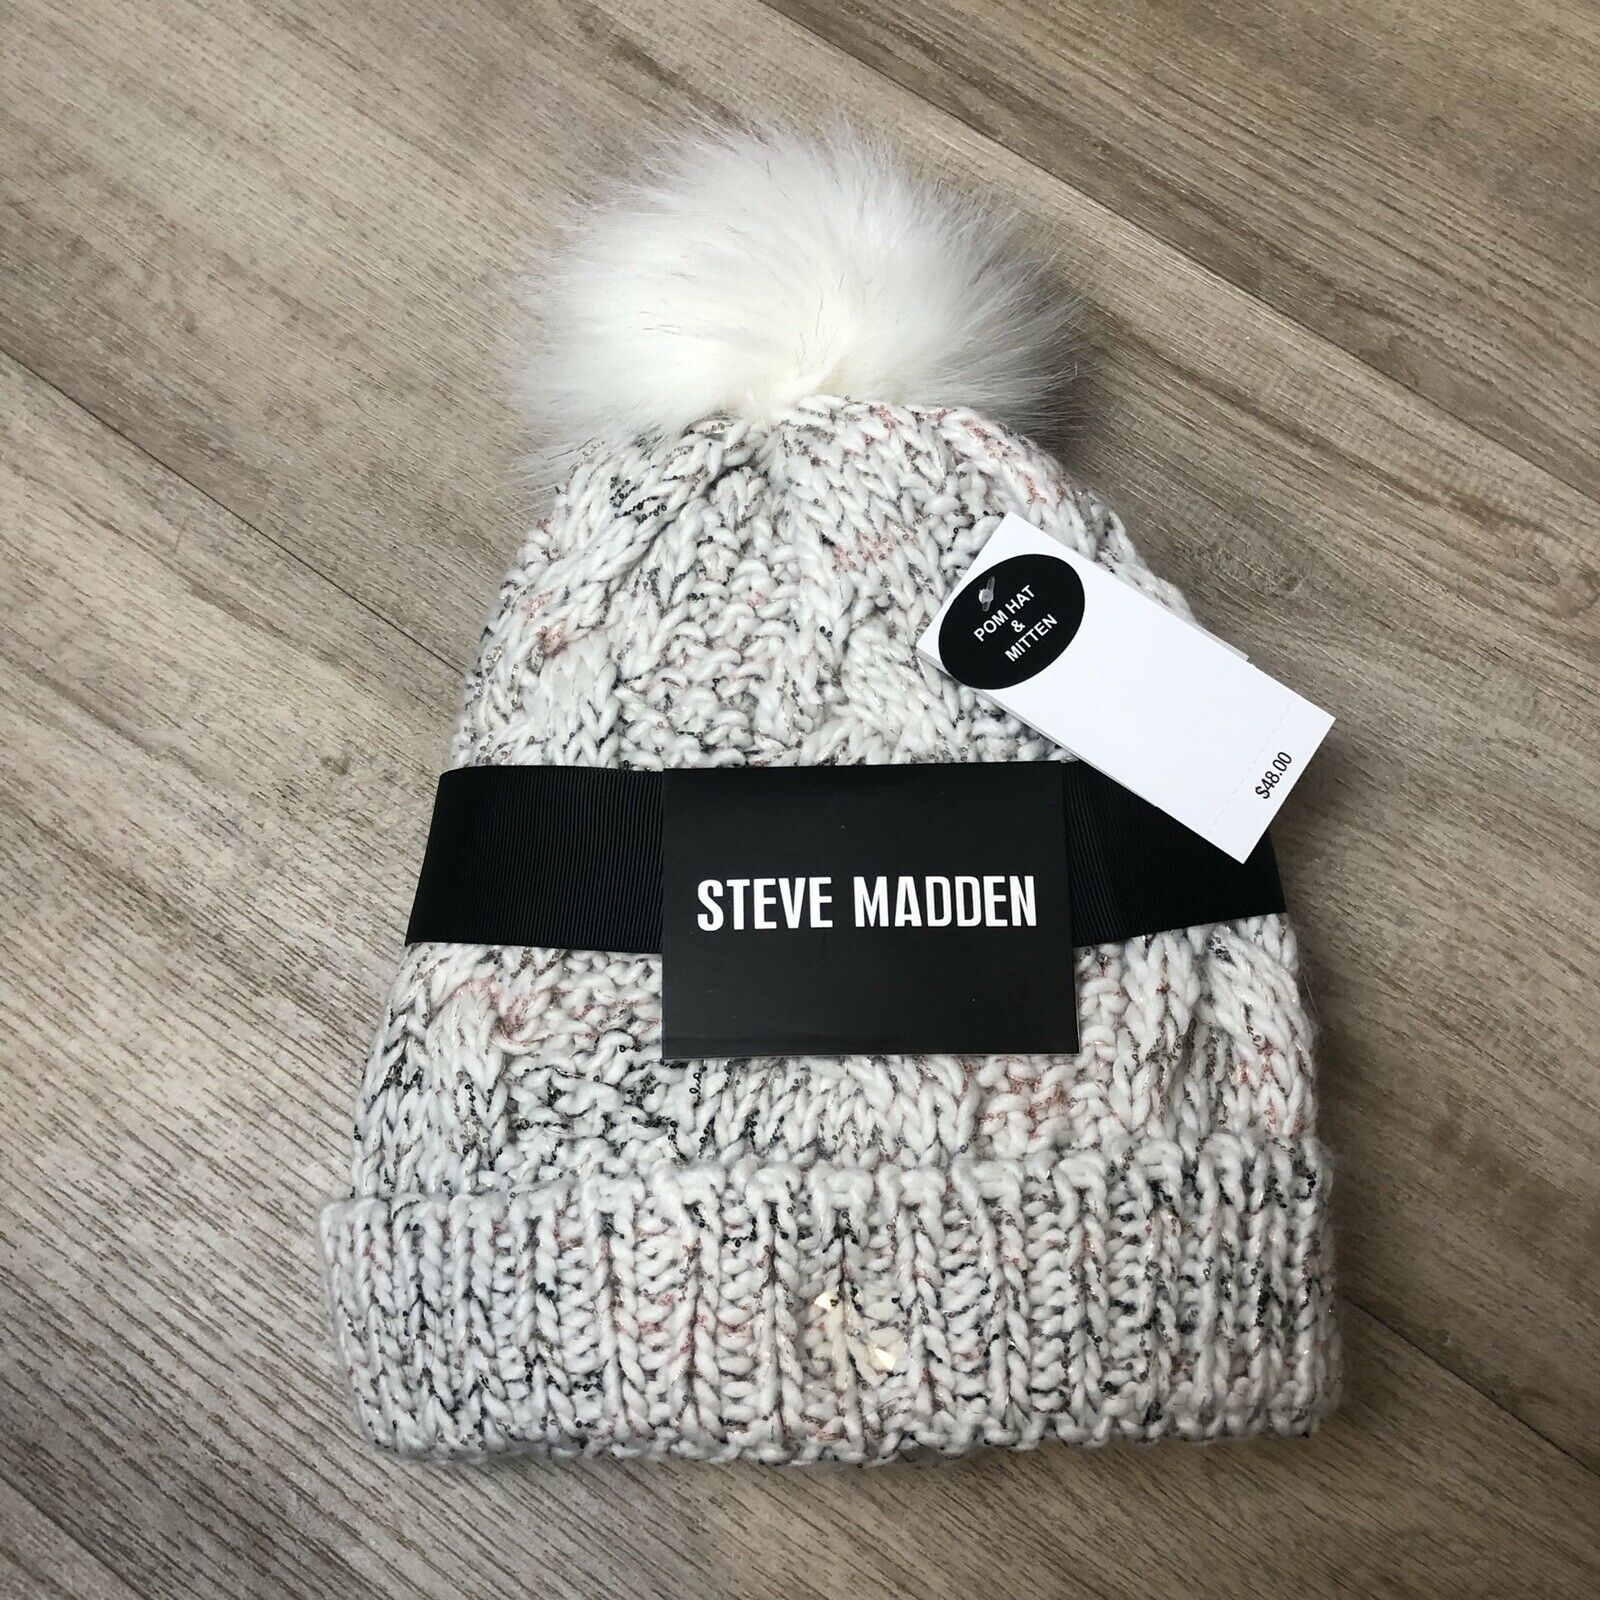 NWT Steve Madden pom hat & mittens set knit knitted soft stretch winter holiday